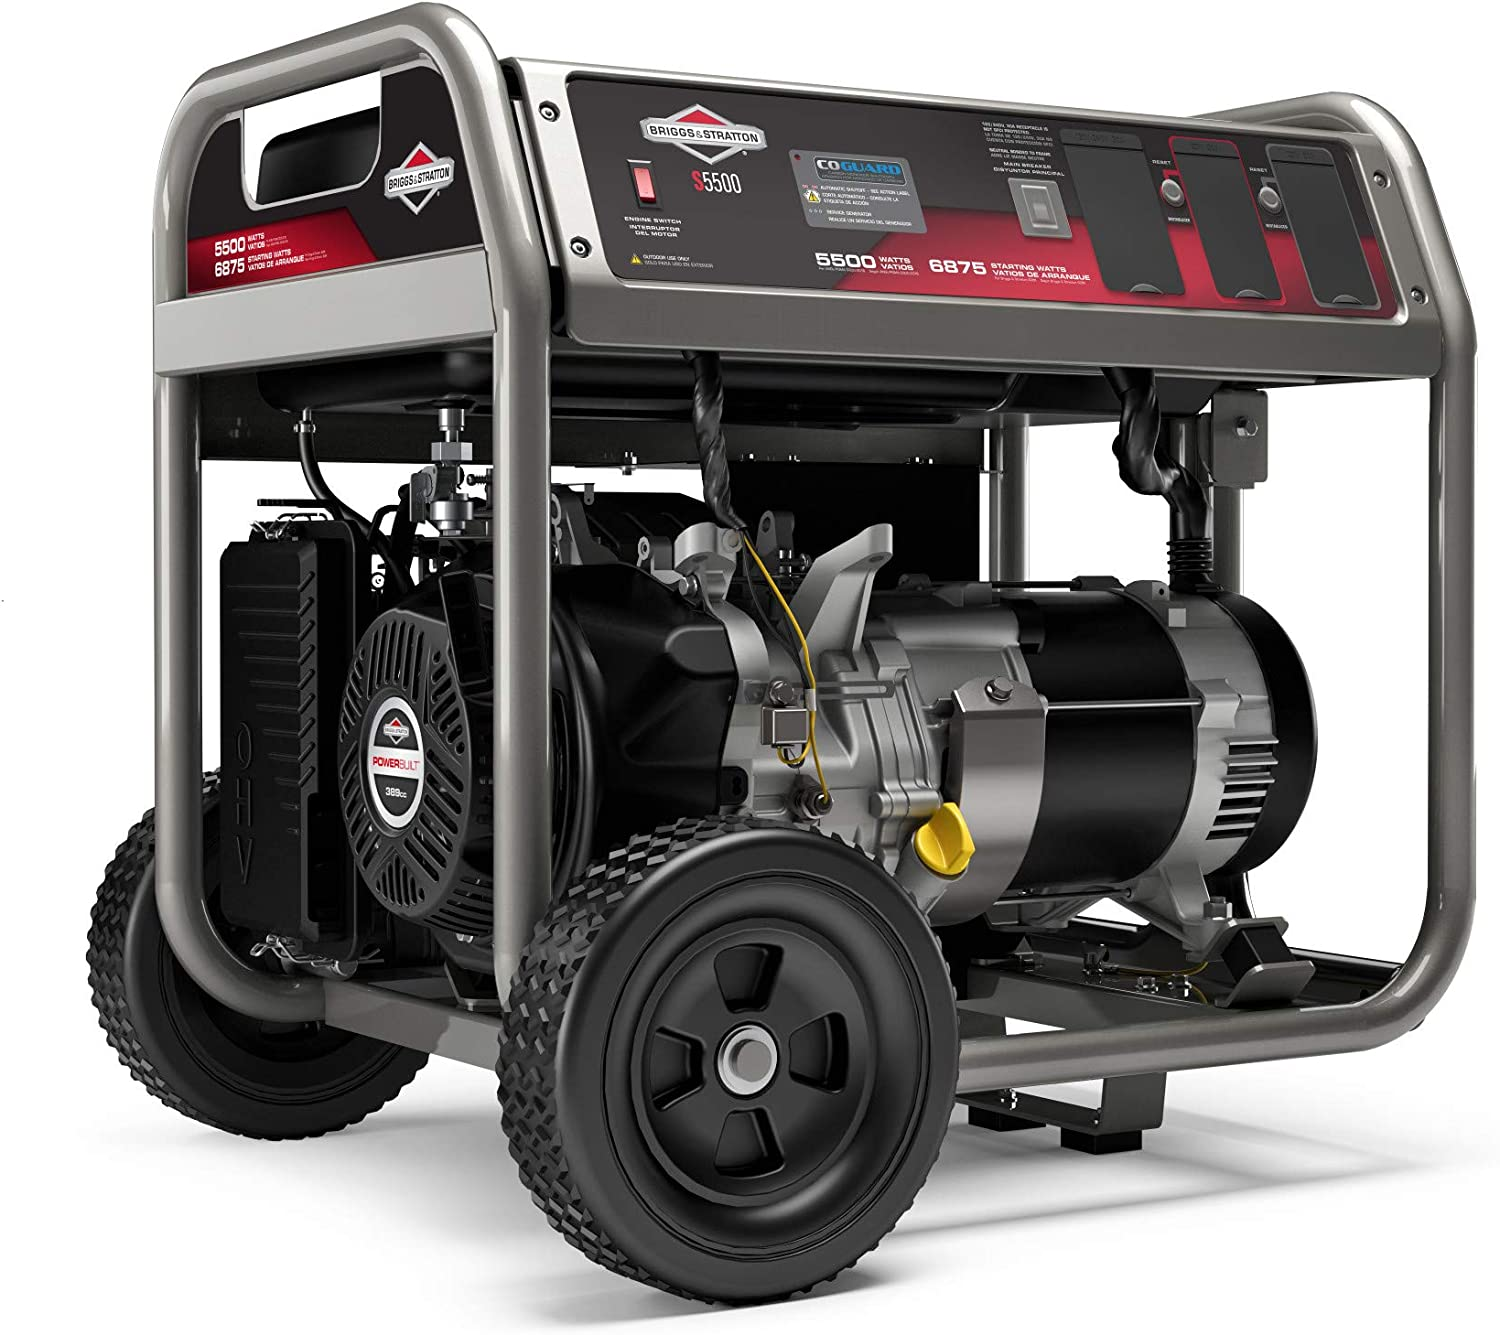 Briggs & Stratton S5500 5500W Portable Generator with CO Guard and (4) 120V (1) 120/240V, 30A outlets, Powered by Briggs & Stratton, 030744